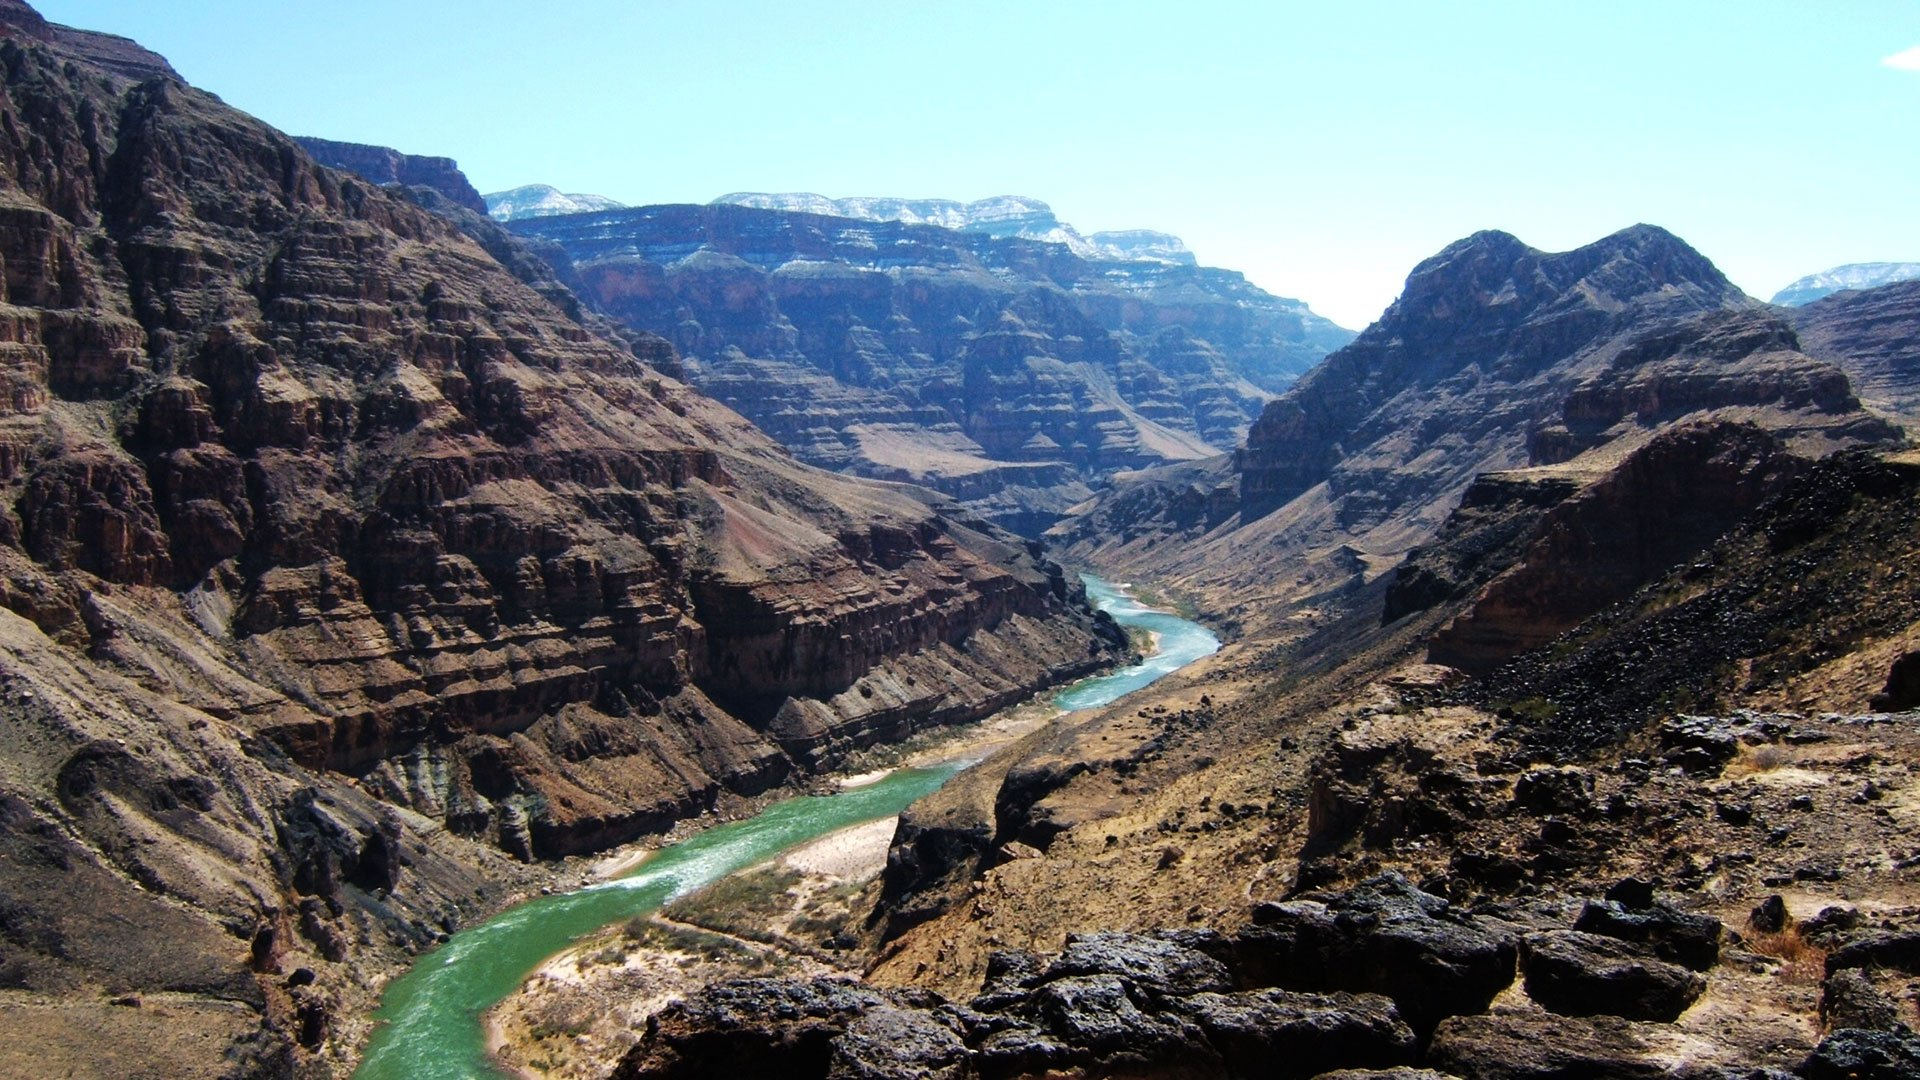 A rugged region of the Grand Canyon with the Colorado River cutting through.